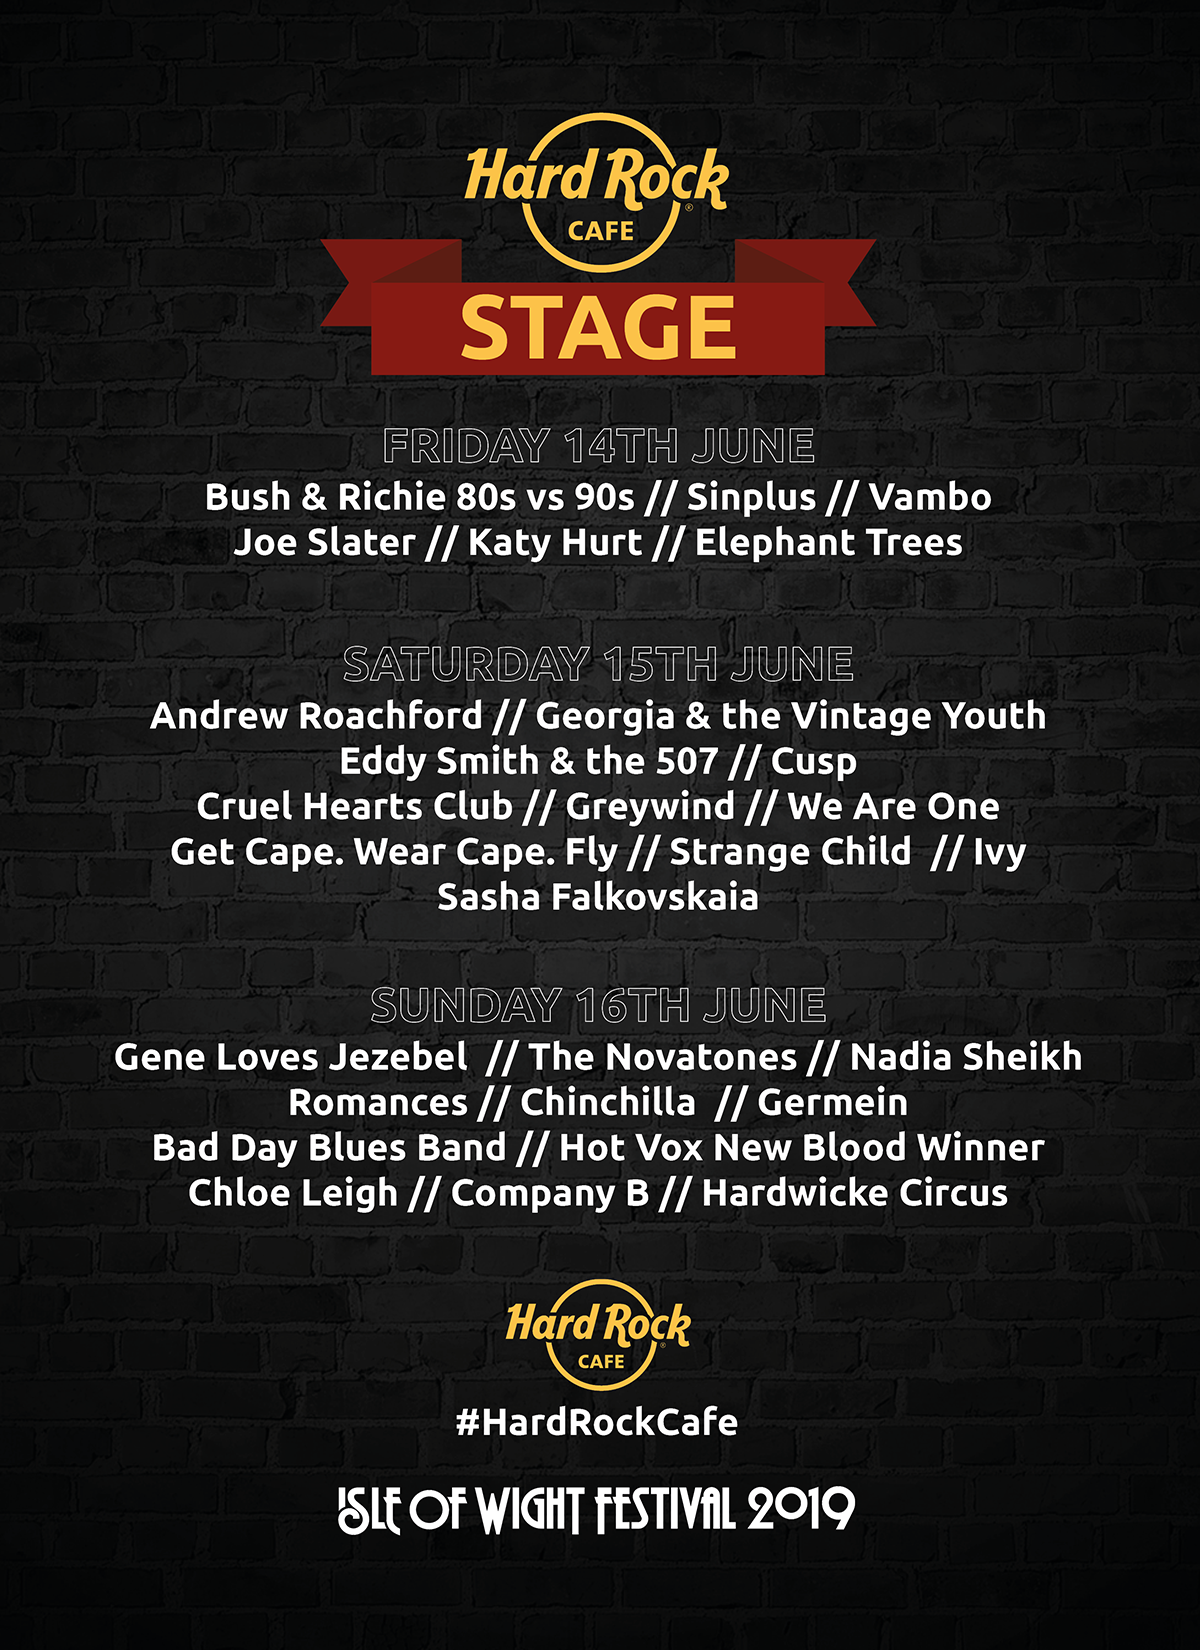 Hard Rock Stage - Isle of Wight Festival